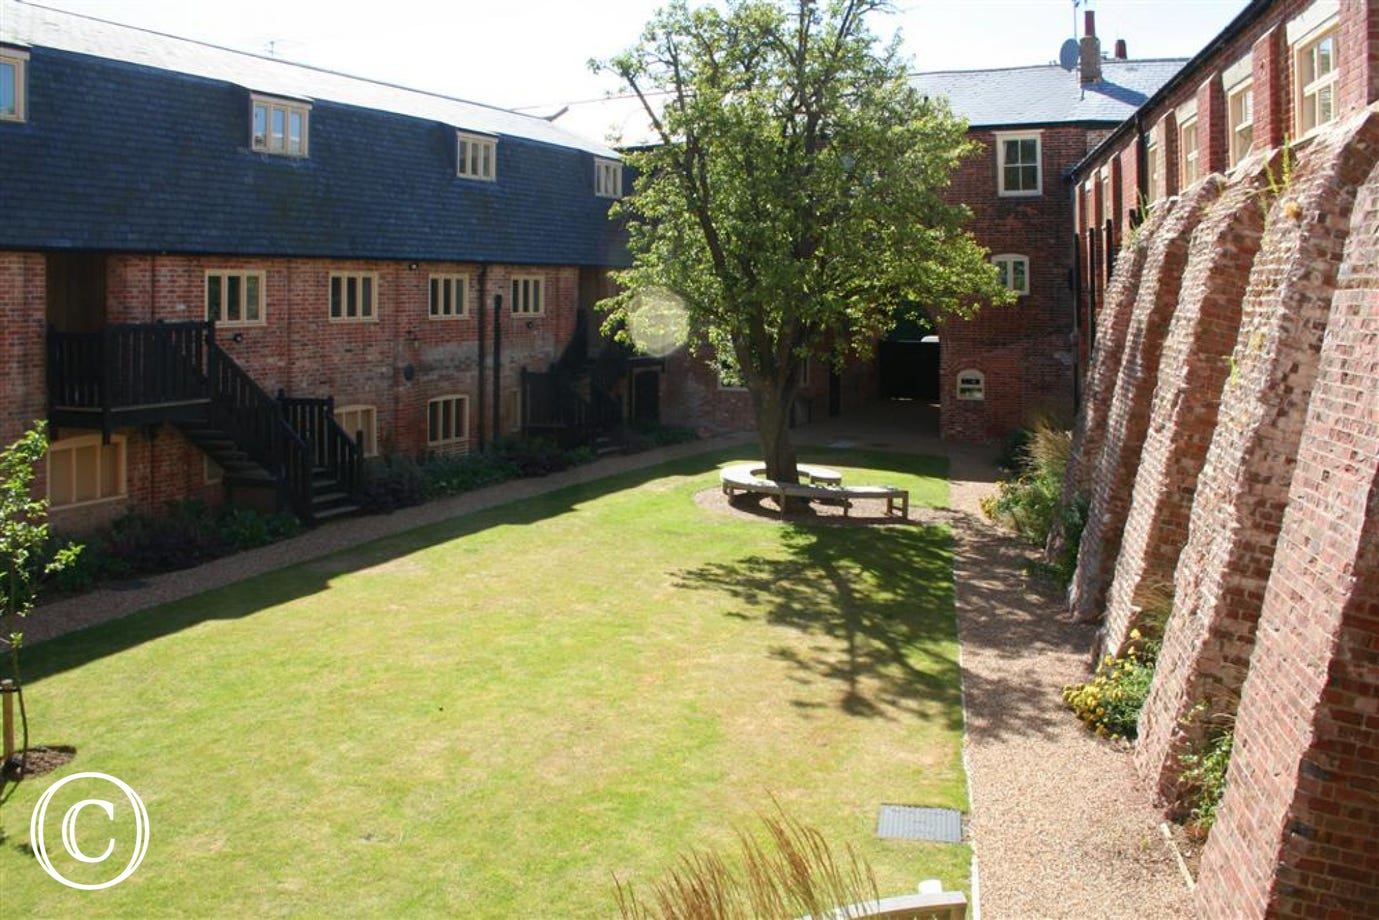 Super views out onto this courtyard from this top floor appartment.